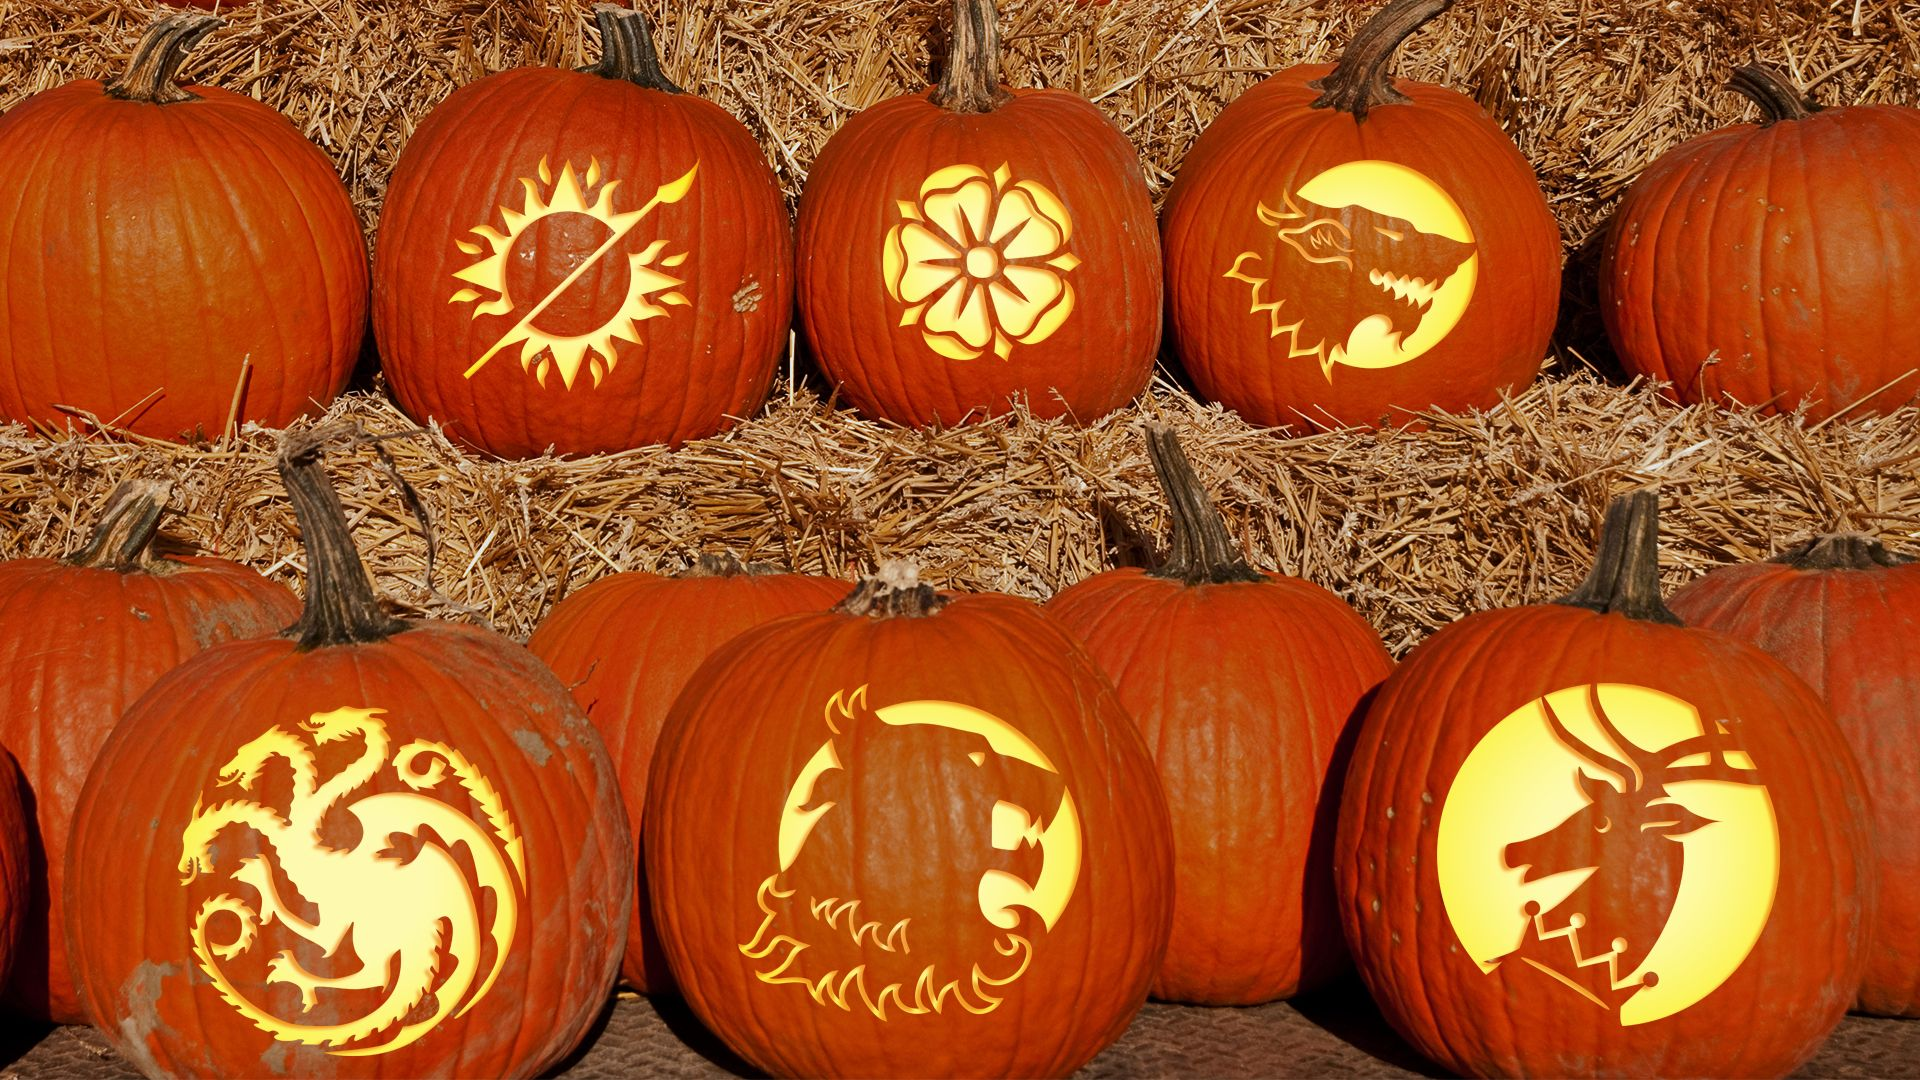 [+] Pumpkin Carving Ideas Game Of Thrones